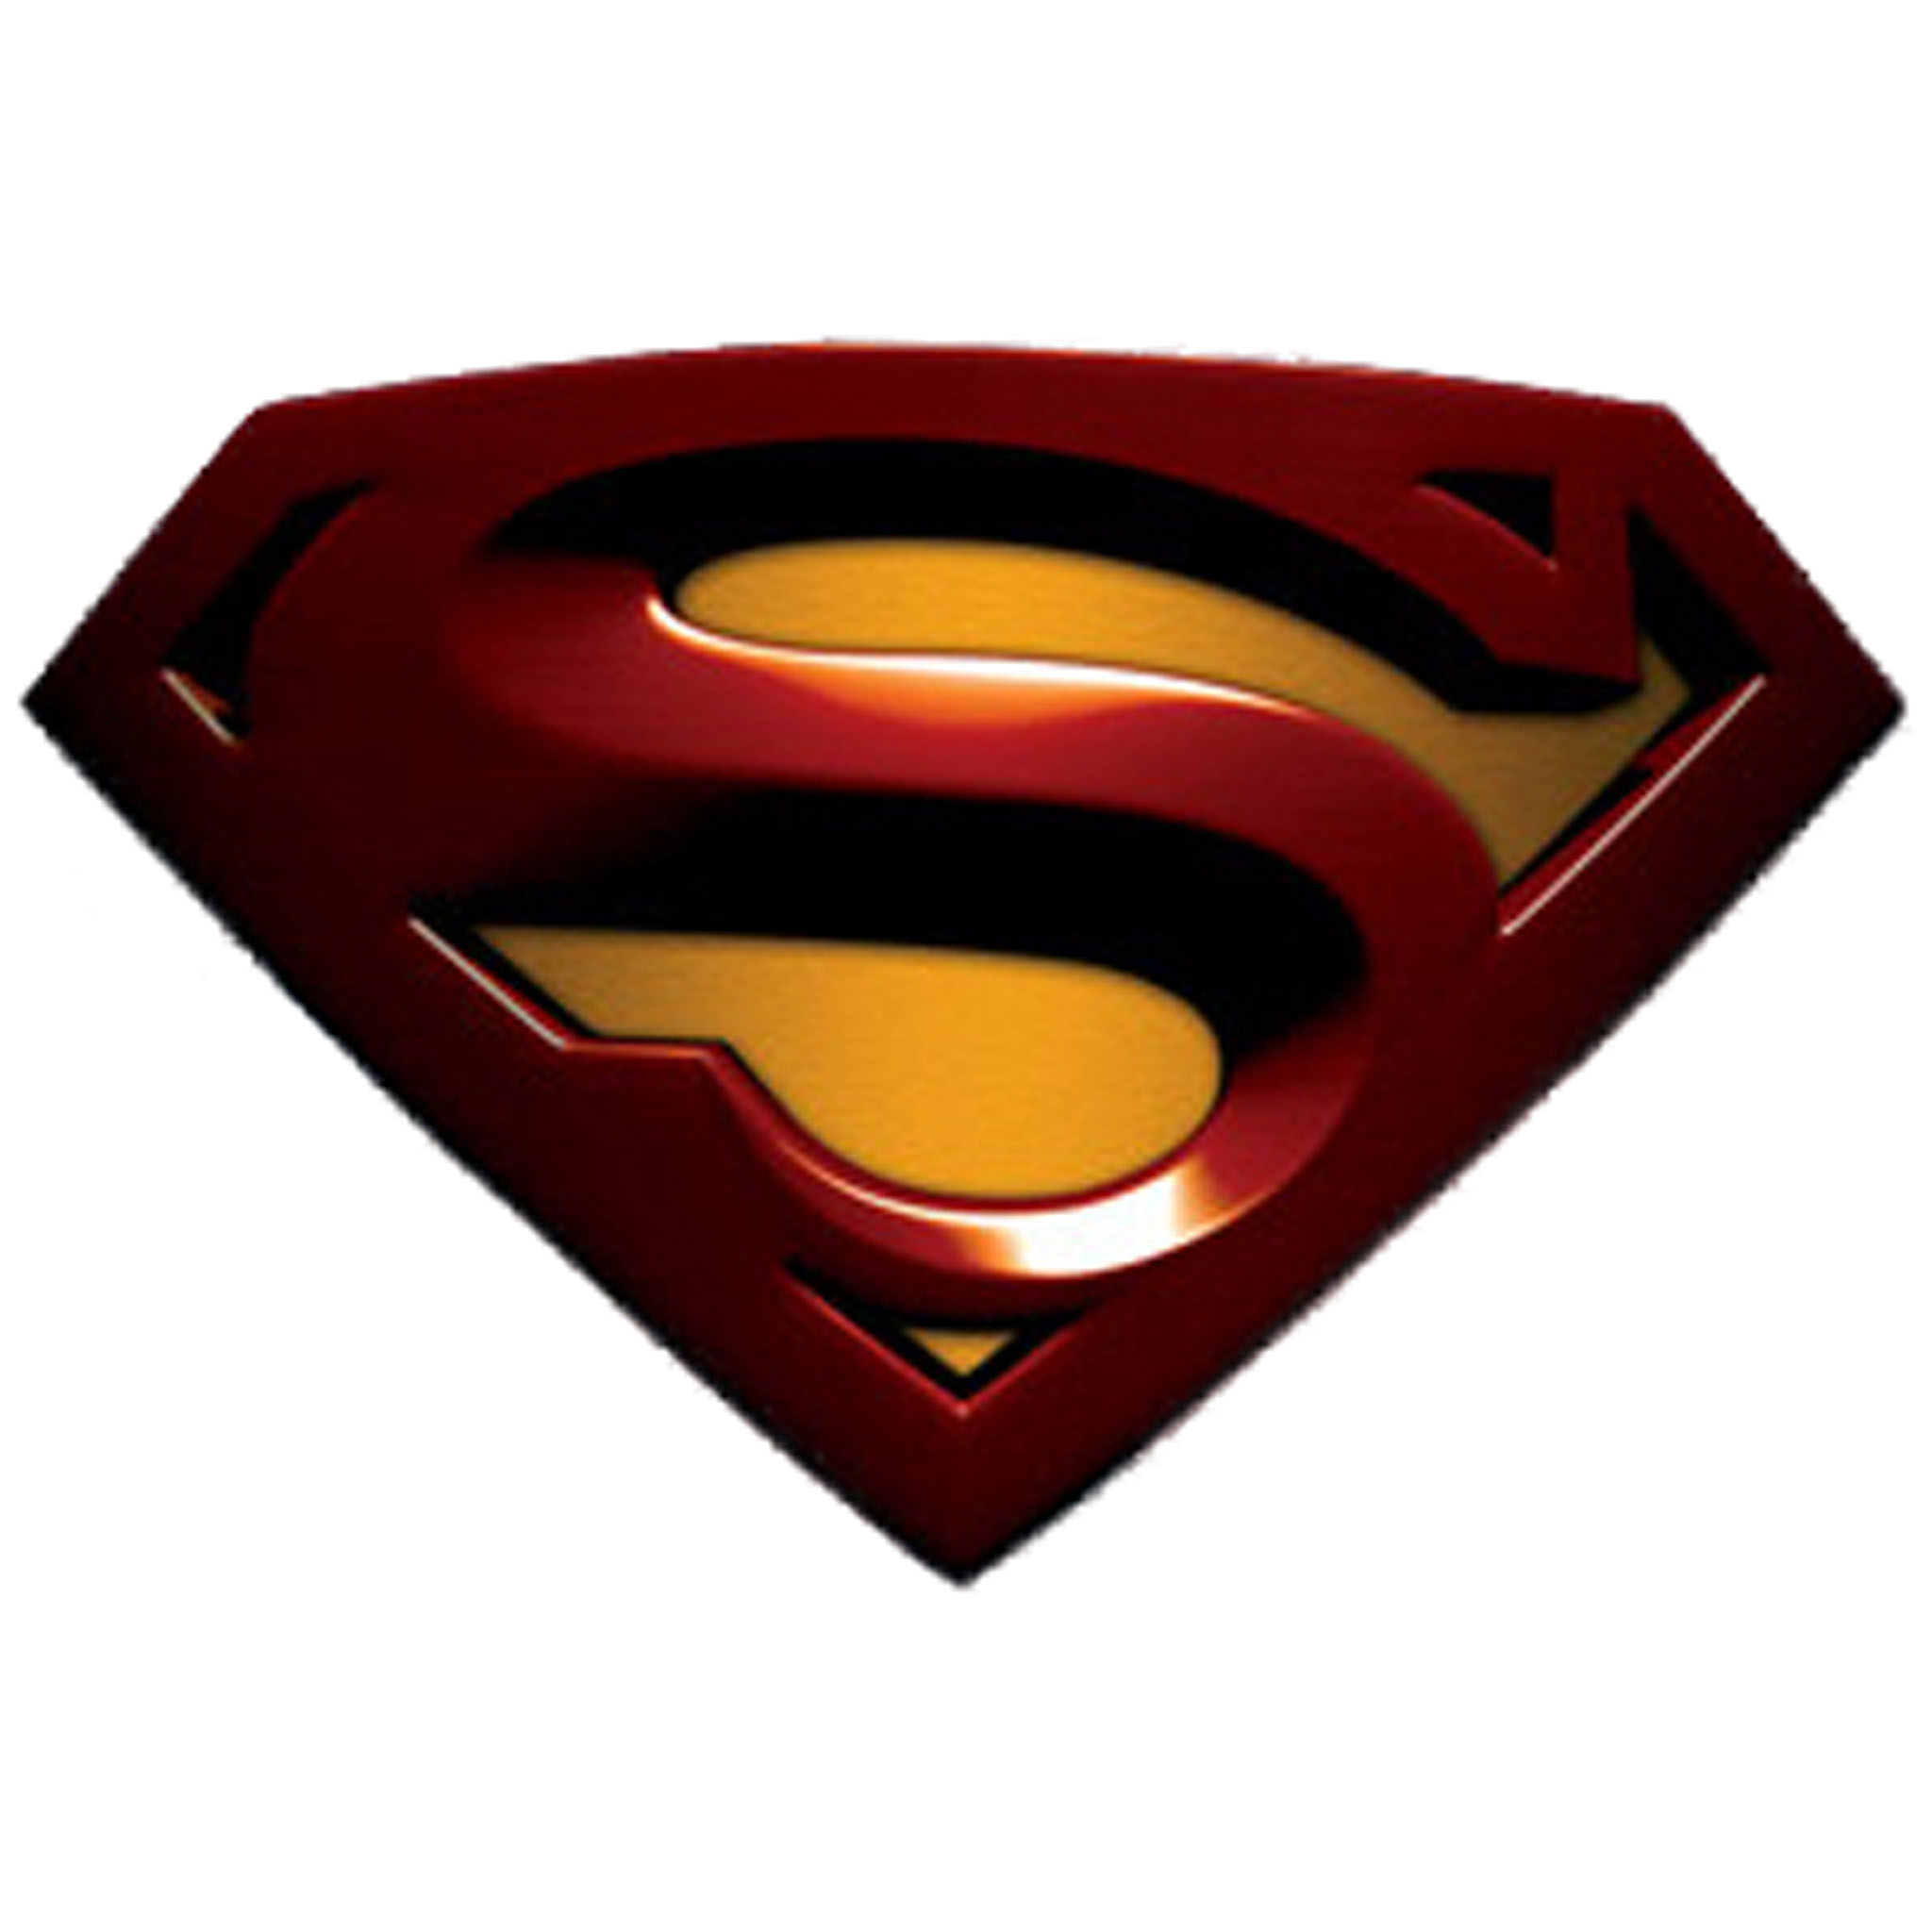 Superman Logo Black Splatter Superhero Hq Hd Wallpaper With ...